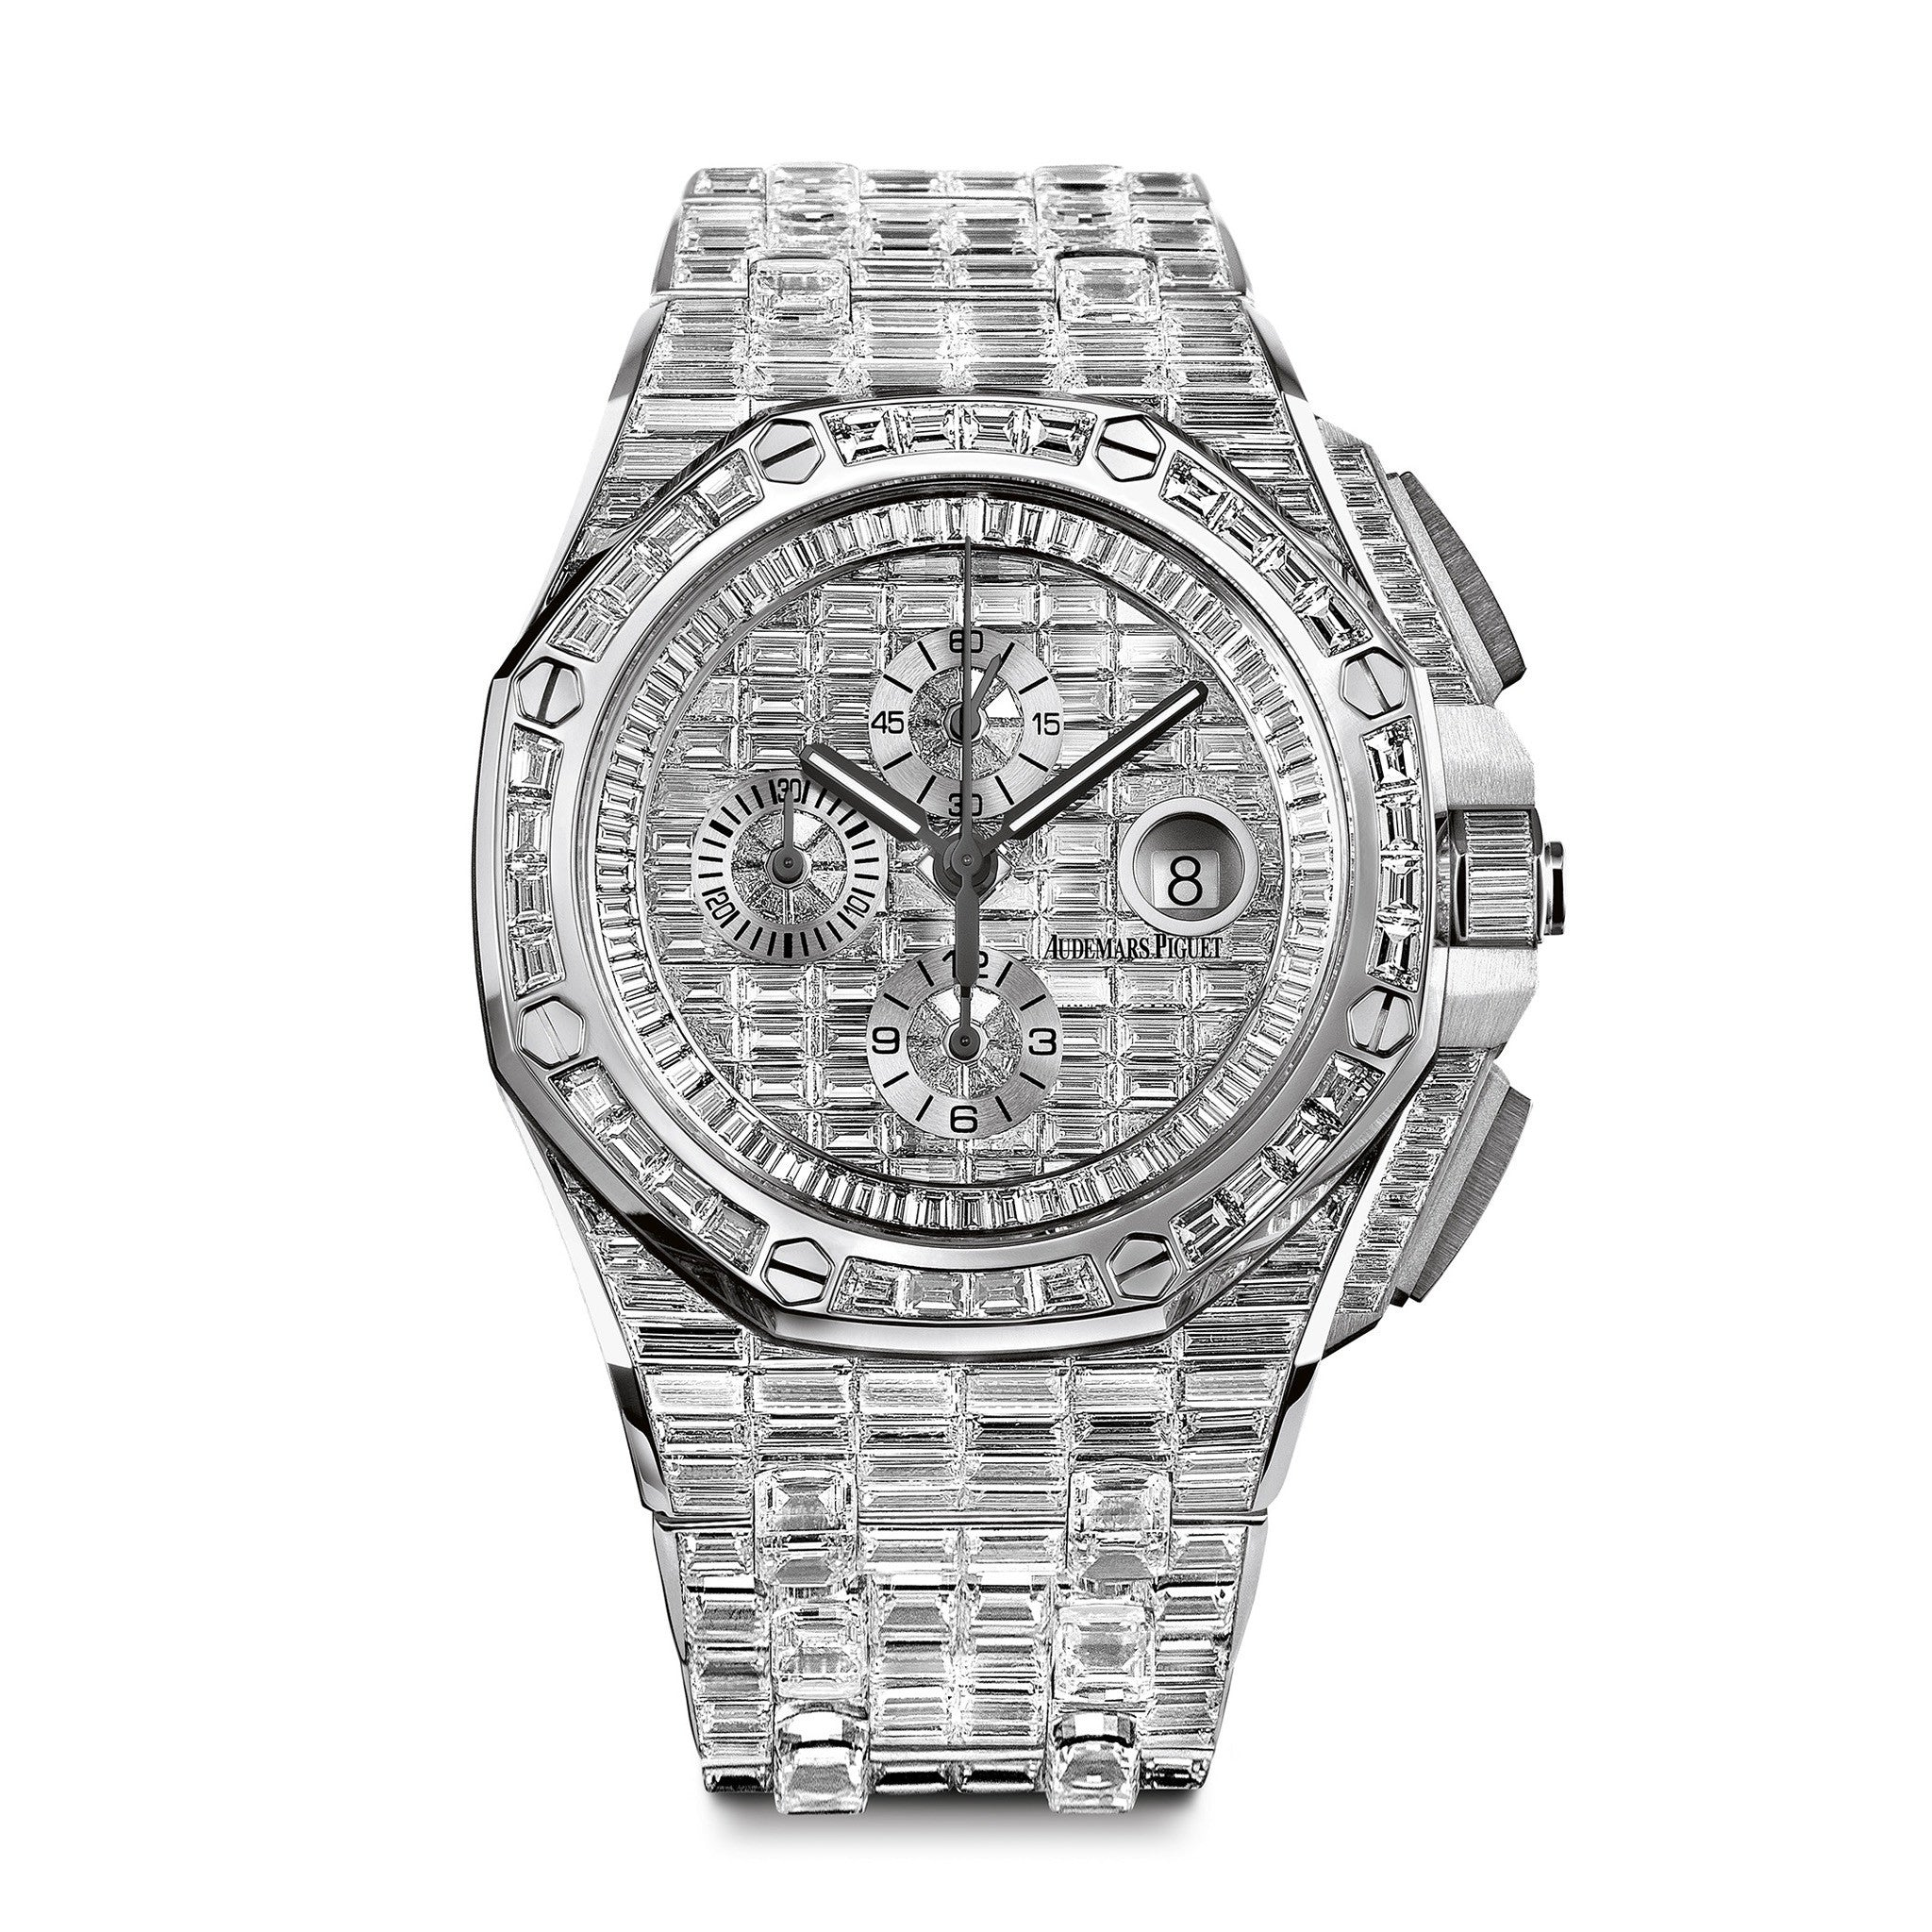 Royal Oak Offshore Chronograph 26403BC.ZZ.8044BC.01 - Audemars Piguet